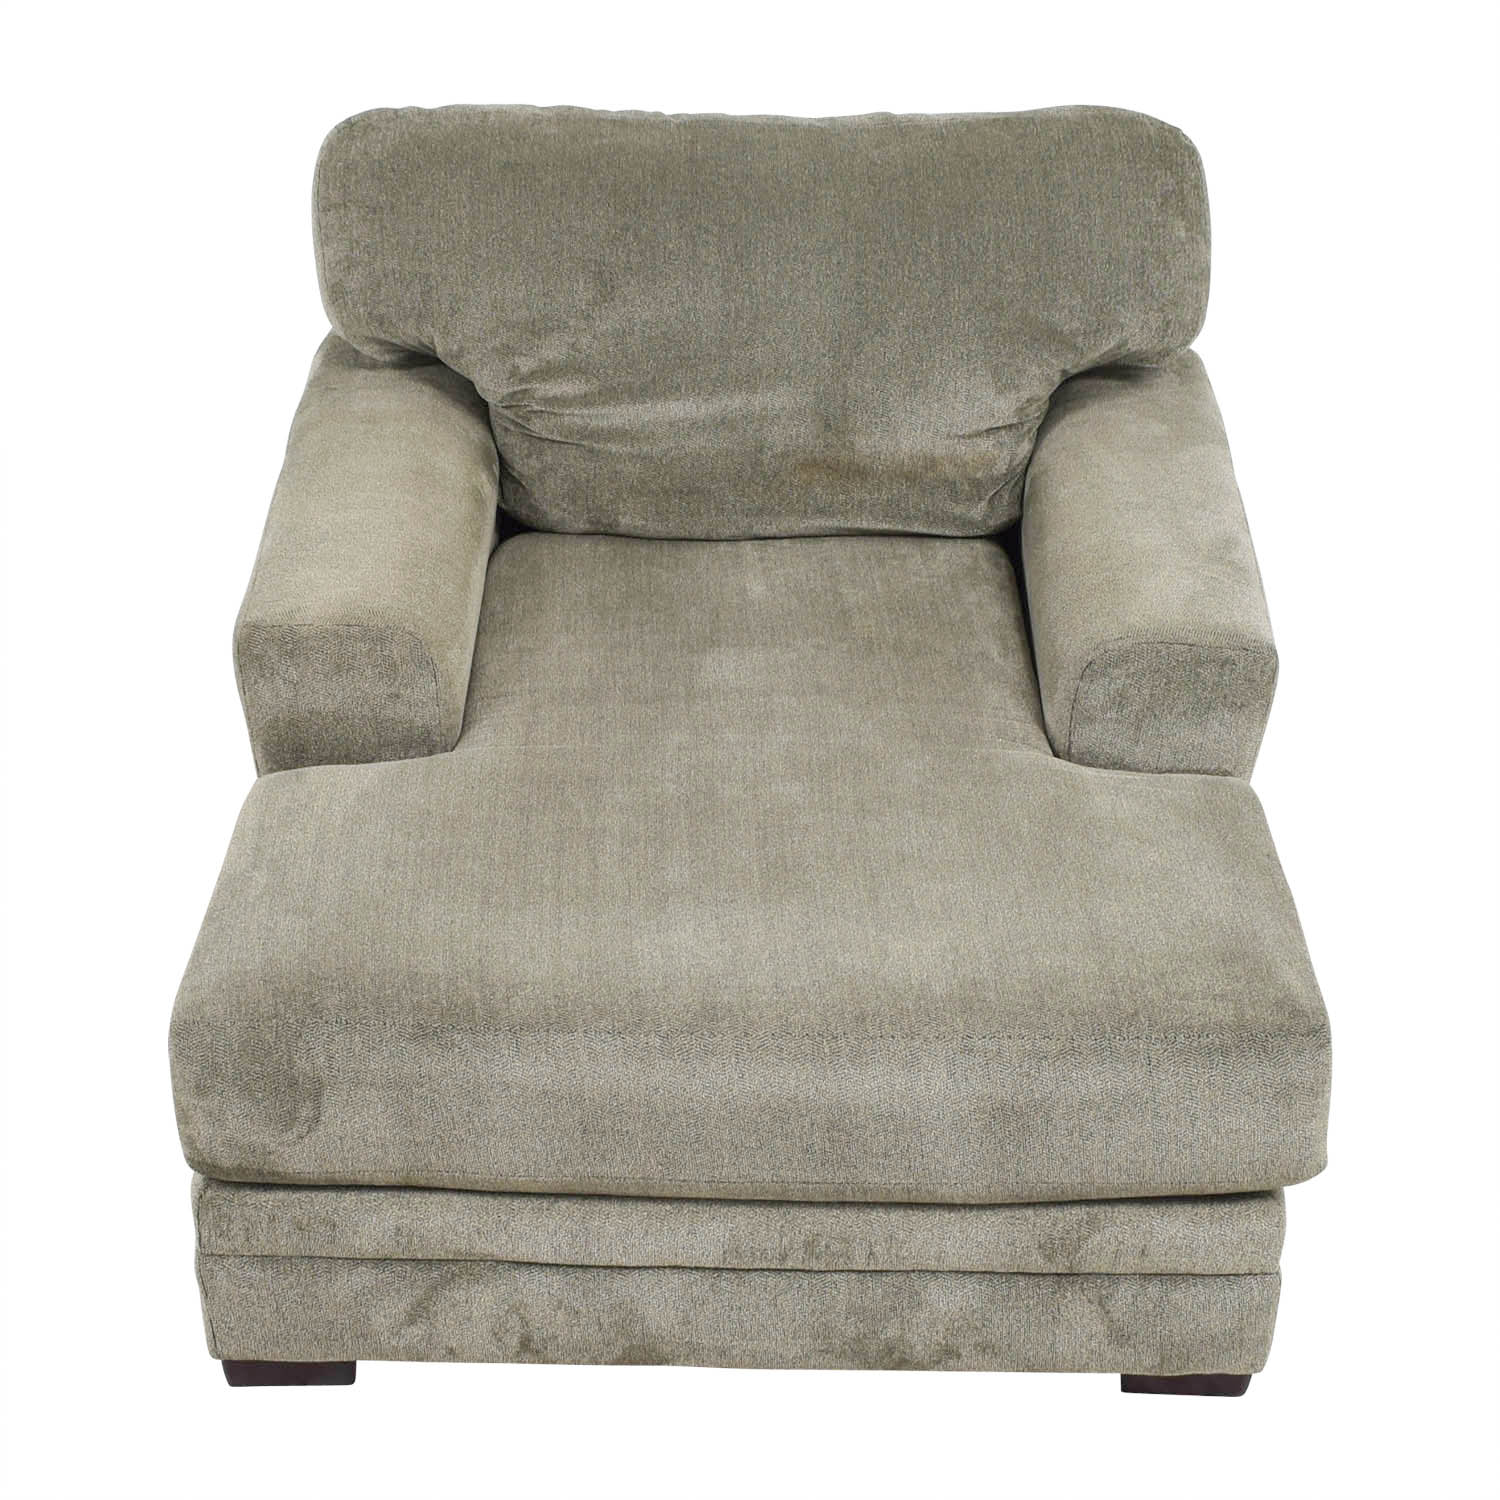 Bobs Furniture Bobs Furniture Grey Chaise Lounge coupon